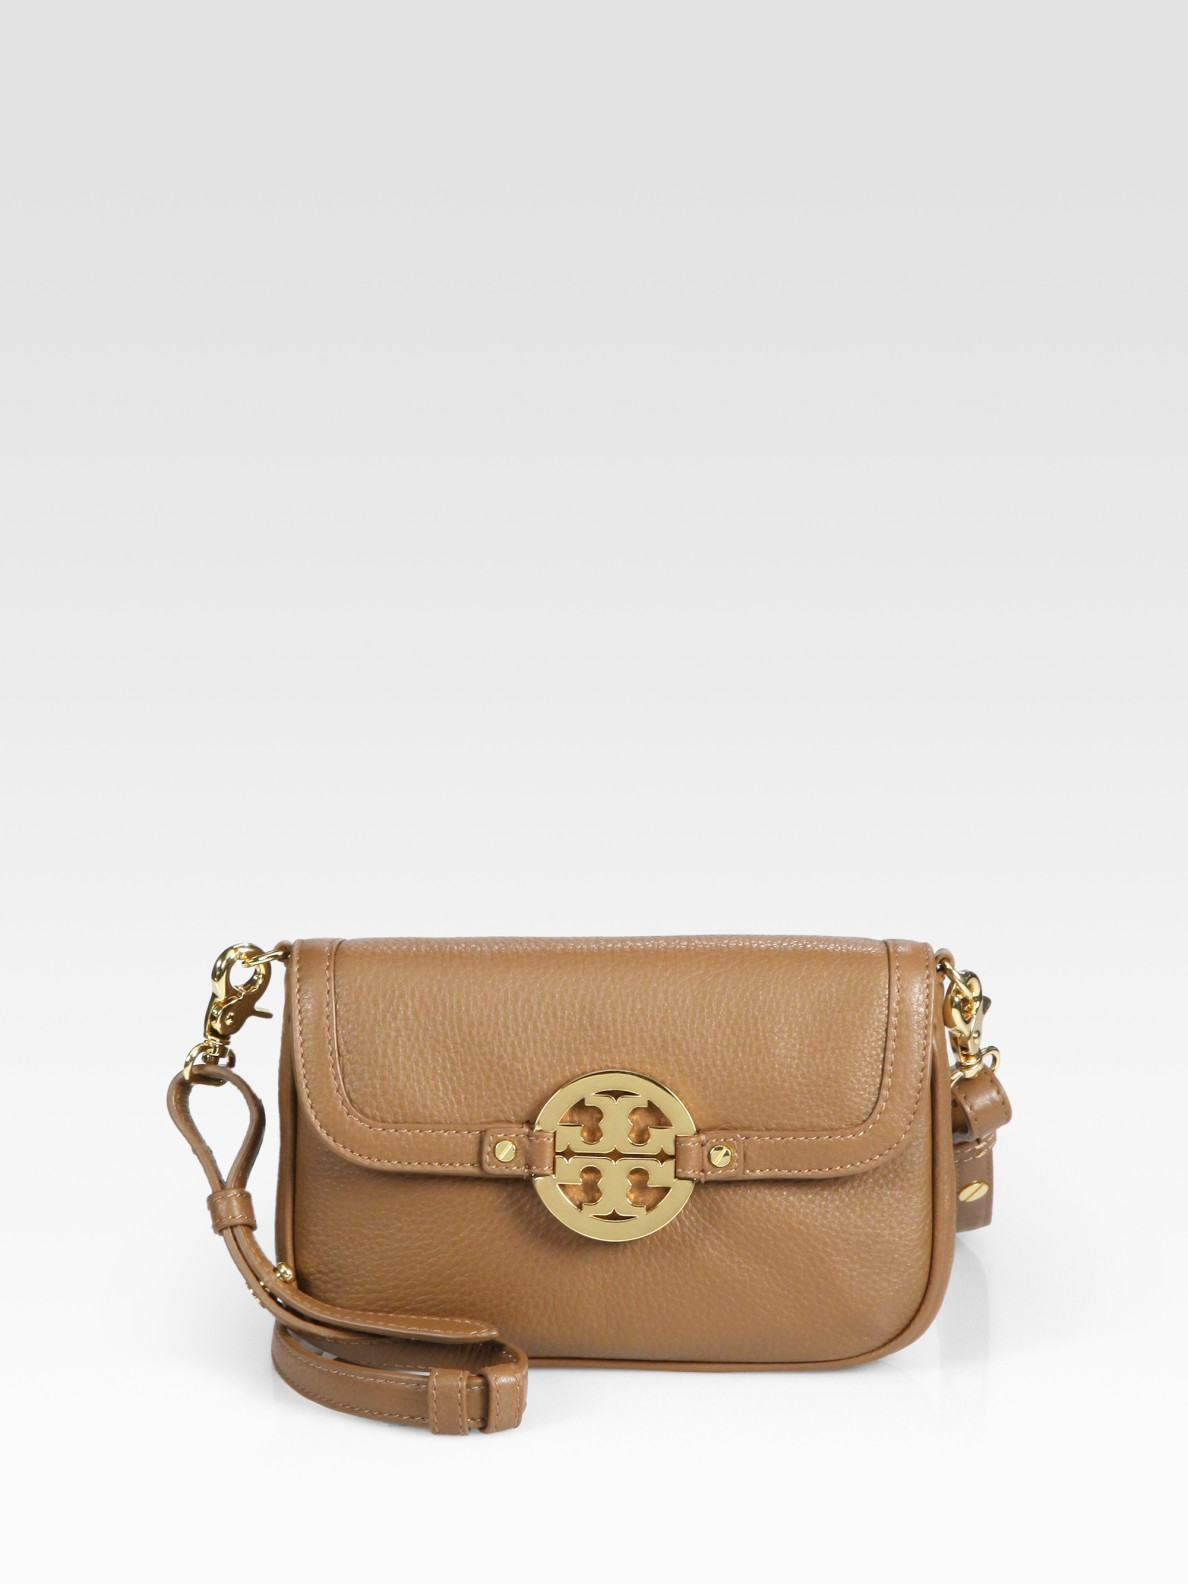 3805d03c410 Lyst - Tory Burch Amanda Crossbody Bag in Brown